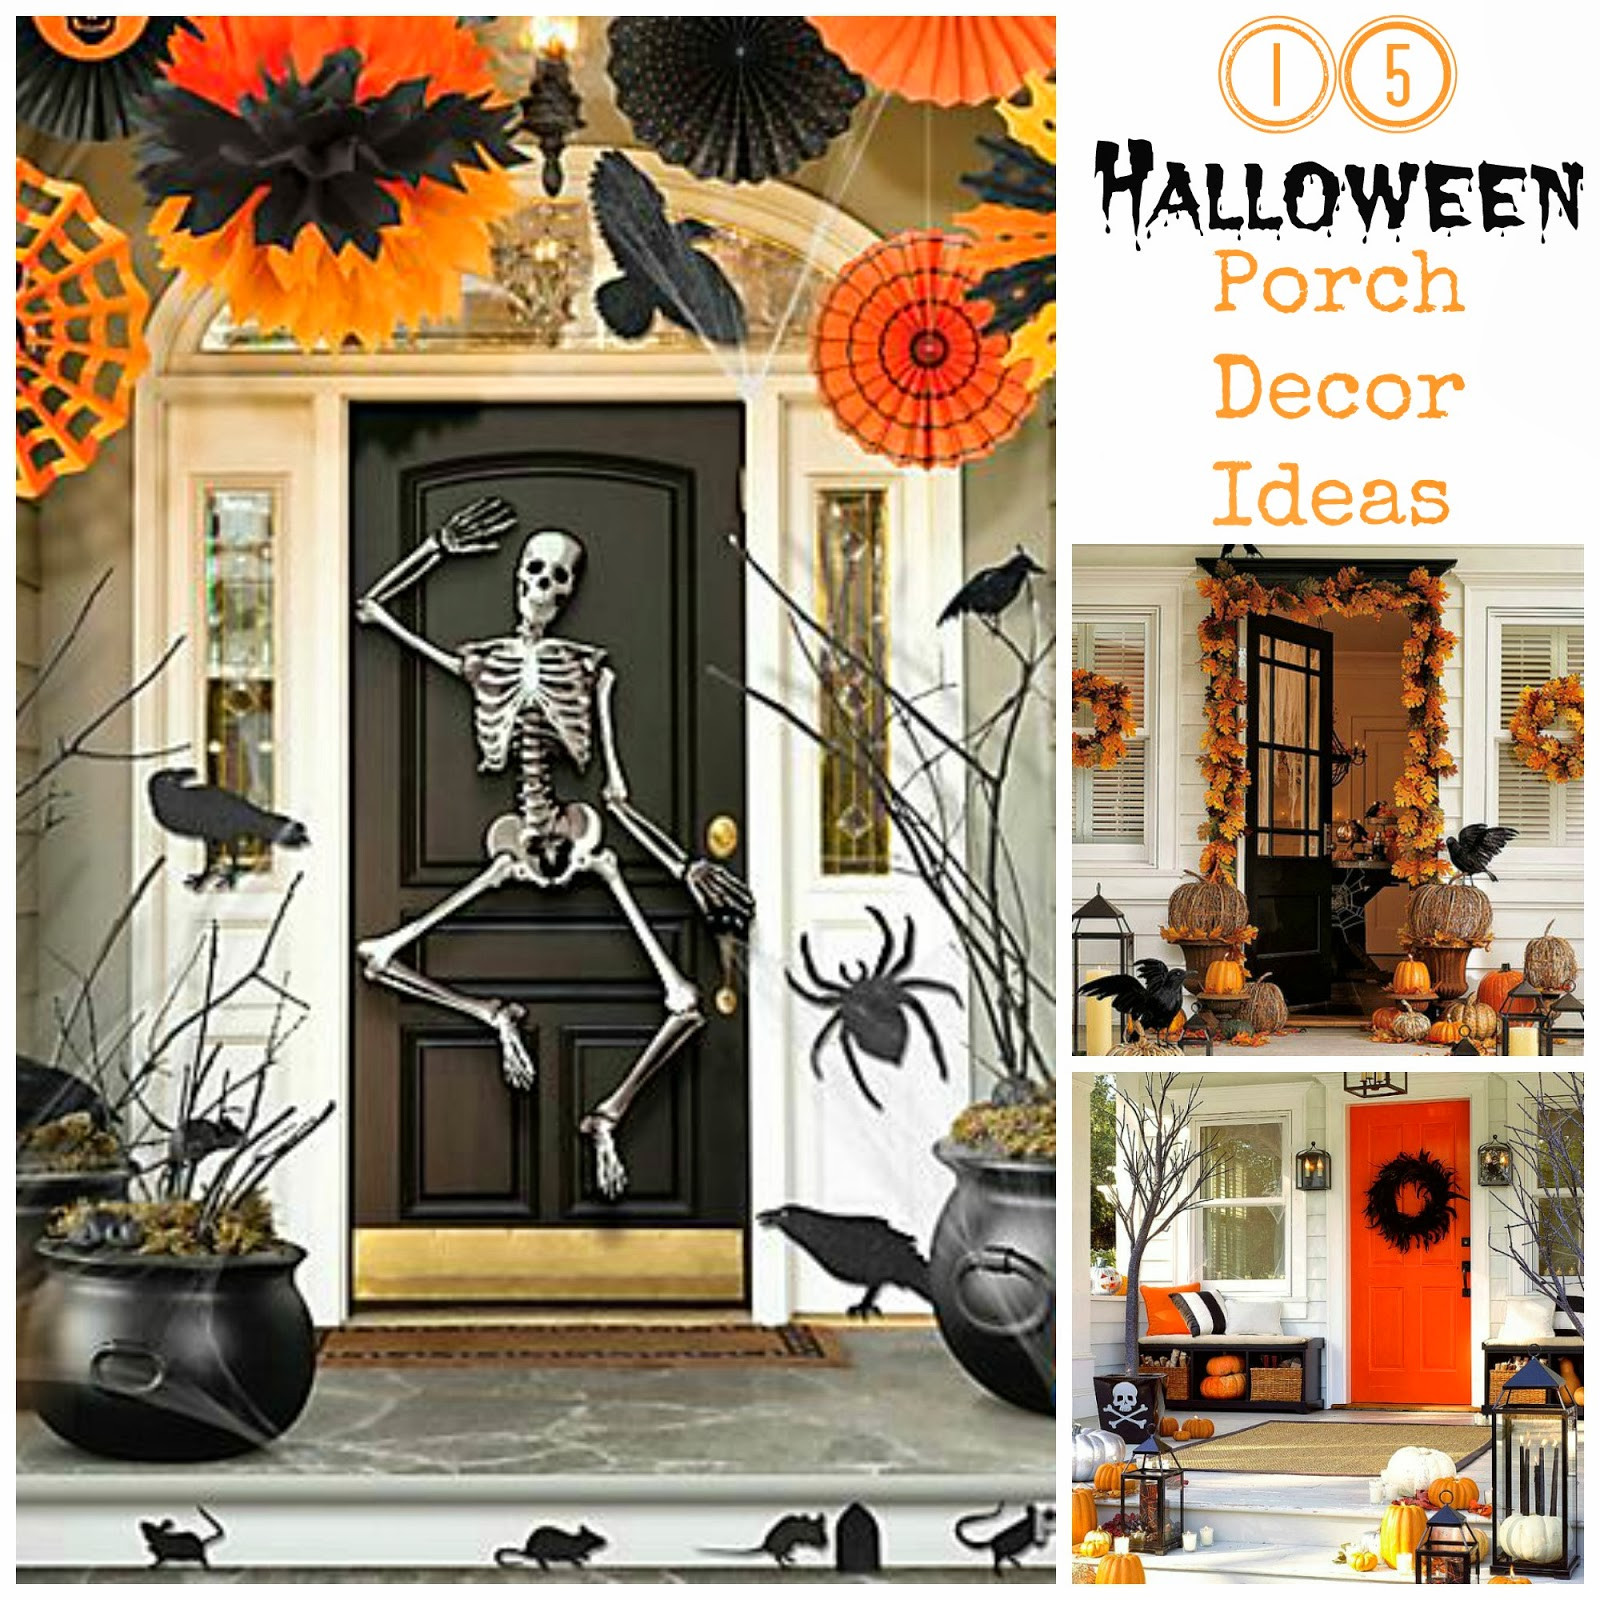 Diy Halloween Porch Decorations  15 Halloween Porch Decor Ideas I Dig Pinterest